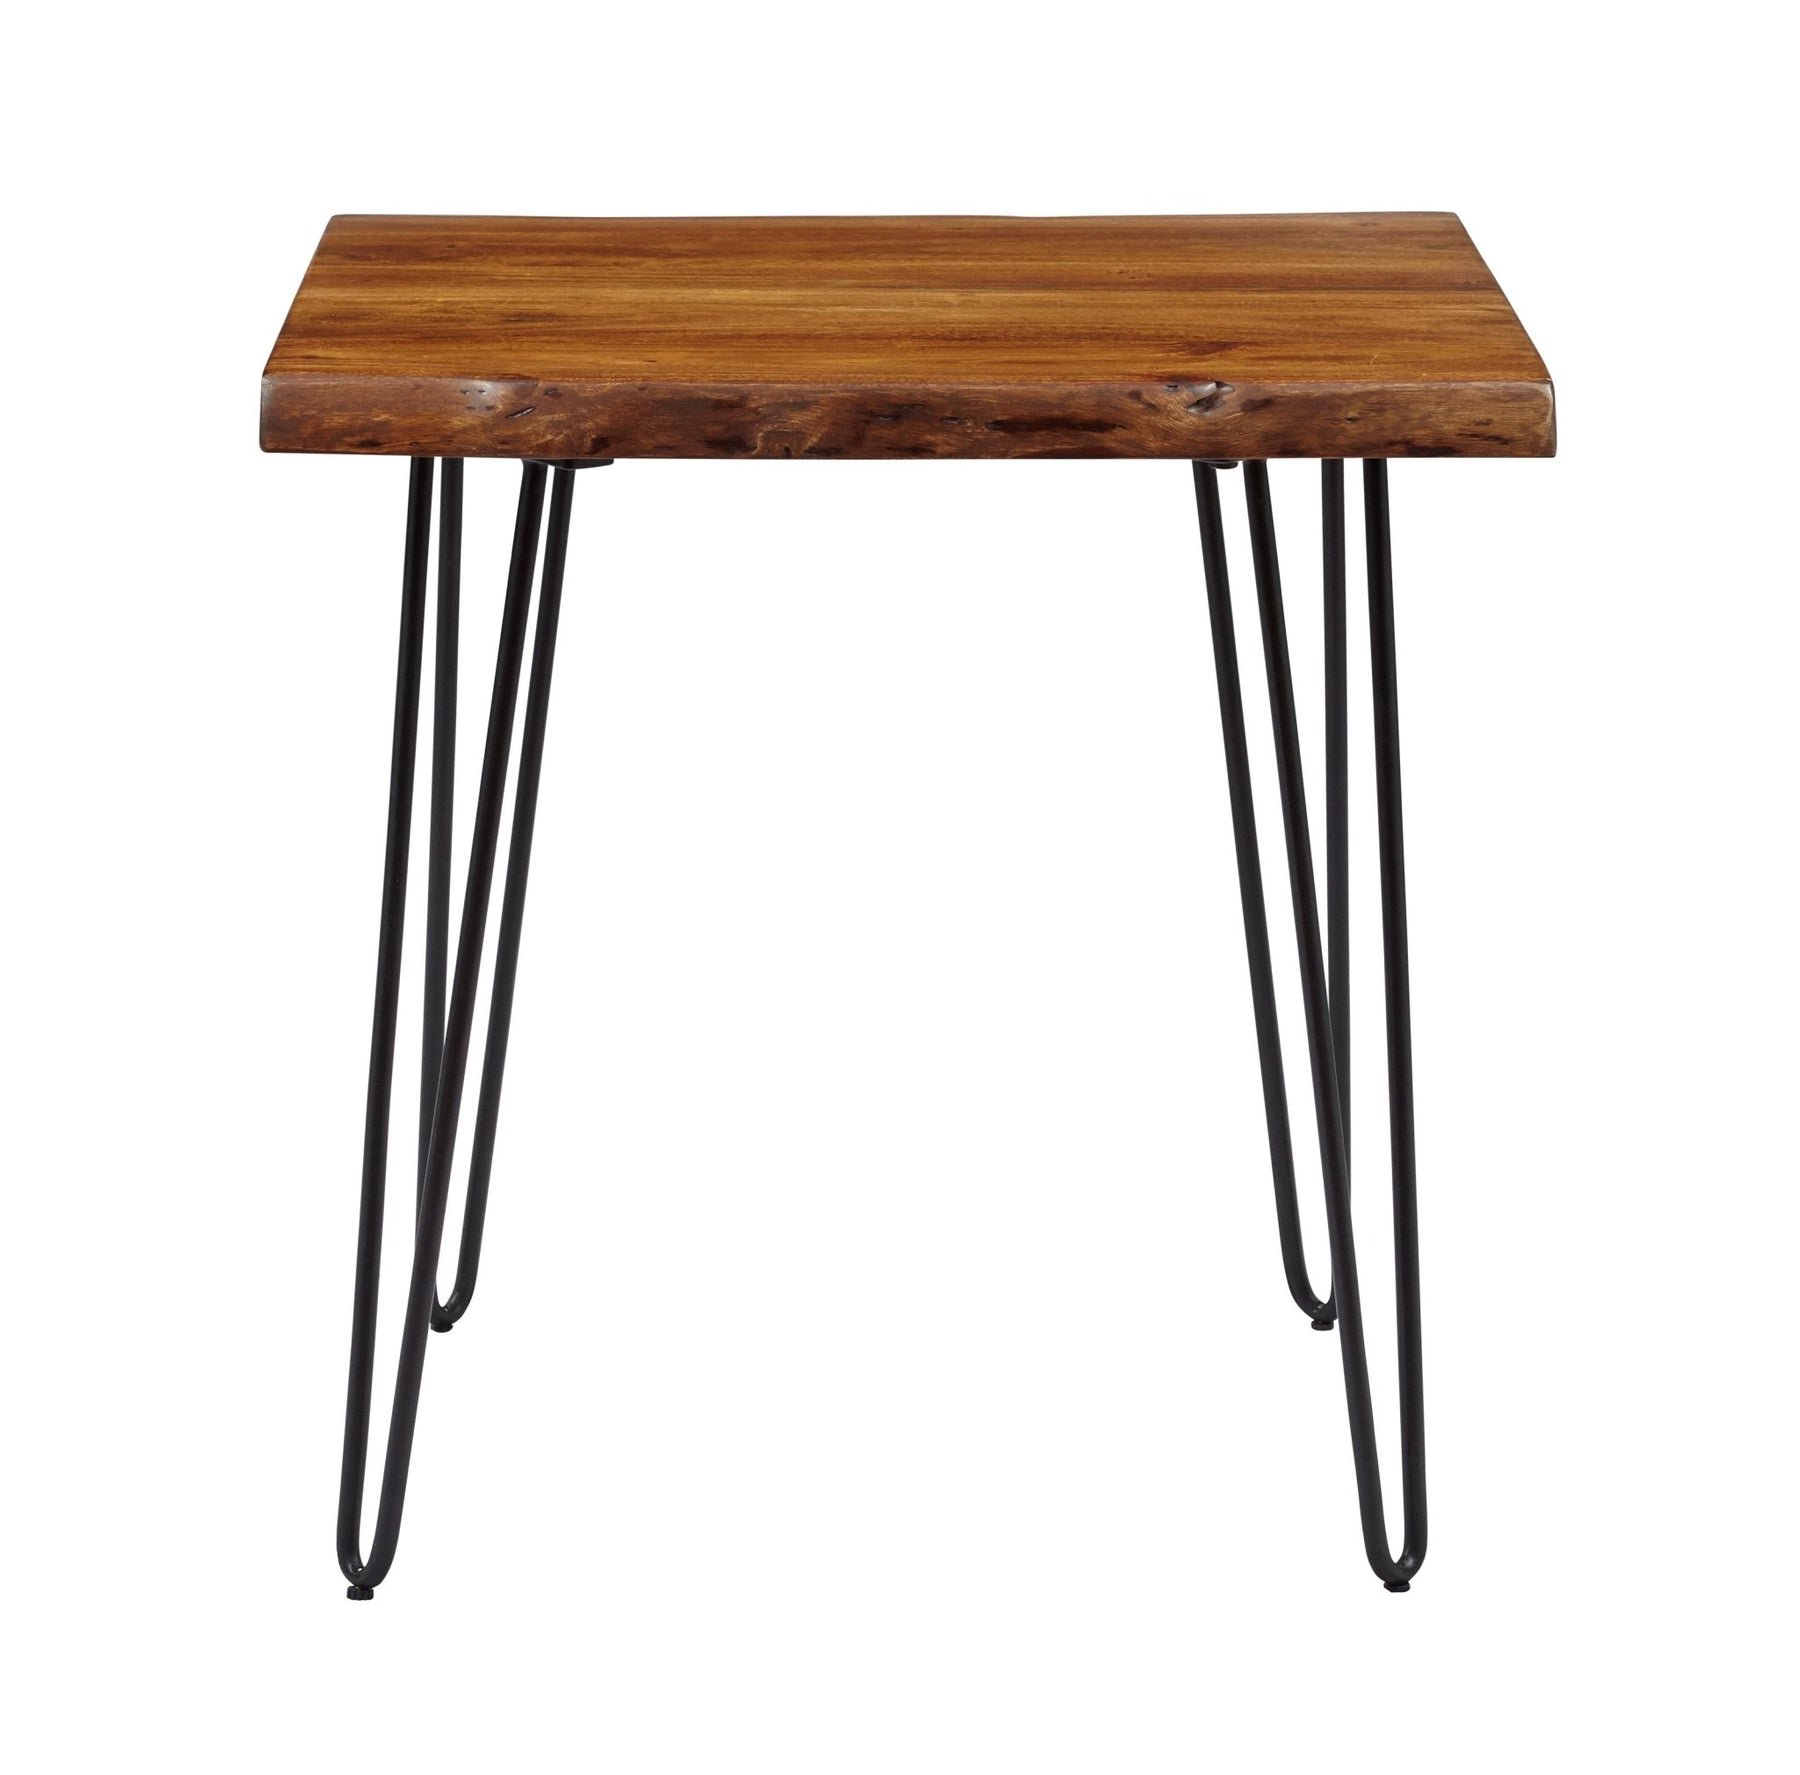 Natures Edge End Table - Austin's Couch Potatoes Furniture